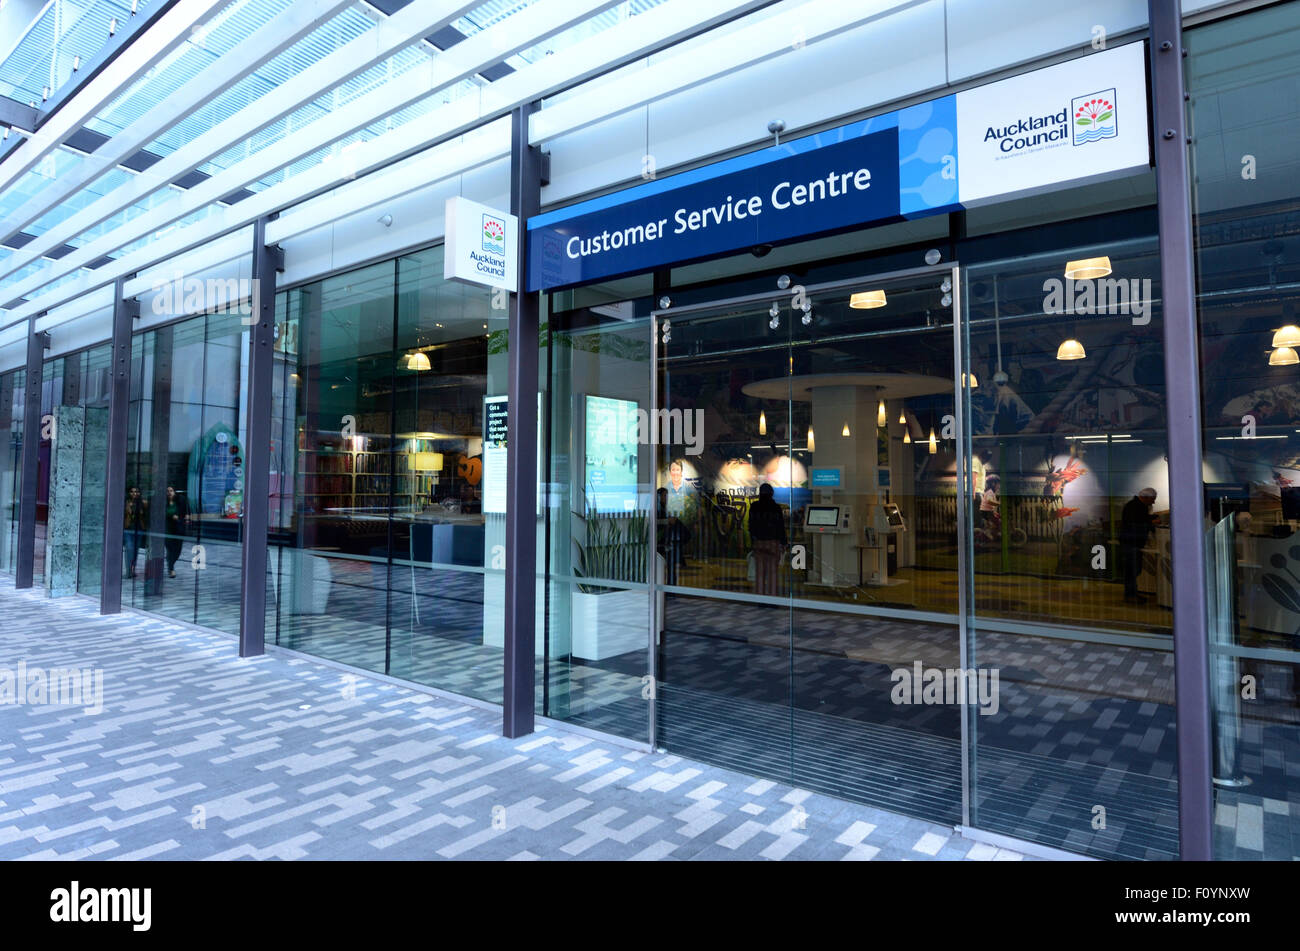 AUCKLAND - AUG 21 2015:Auckland Council customer service centre.It's the largest council in Australasia, with a Stock Photo